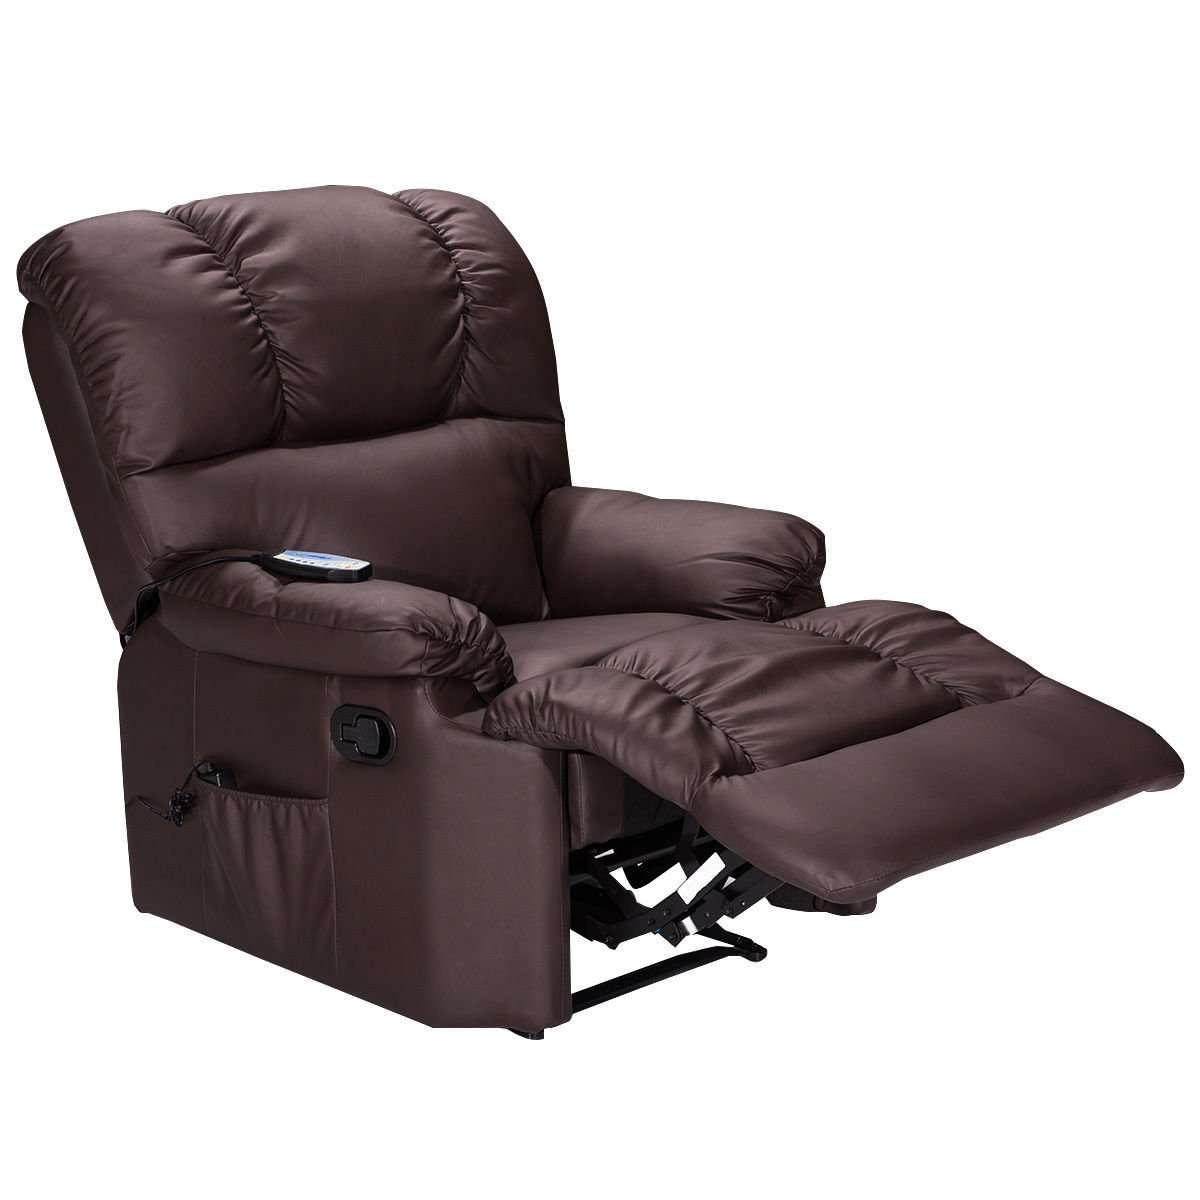 Massage Sofa Recliner Deluxe Ergonomic Lounge Heated PU Leather W/Control Brown by Alek...